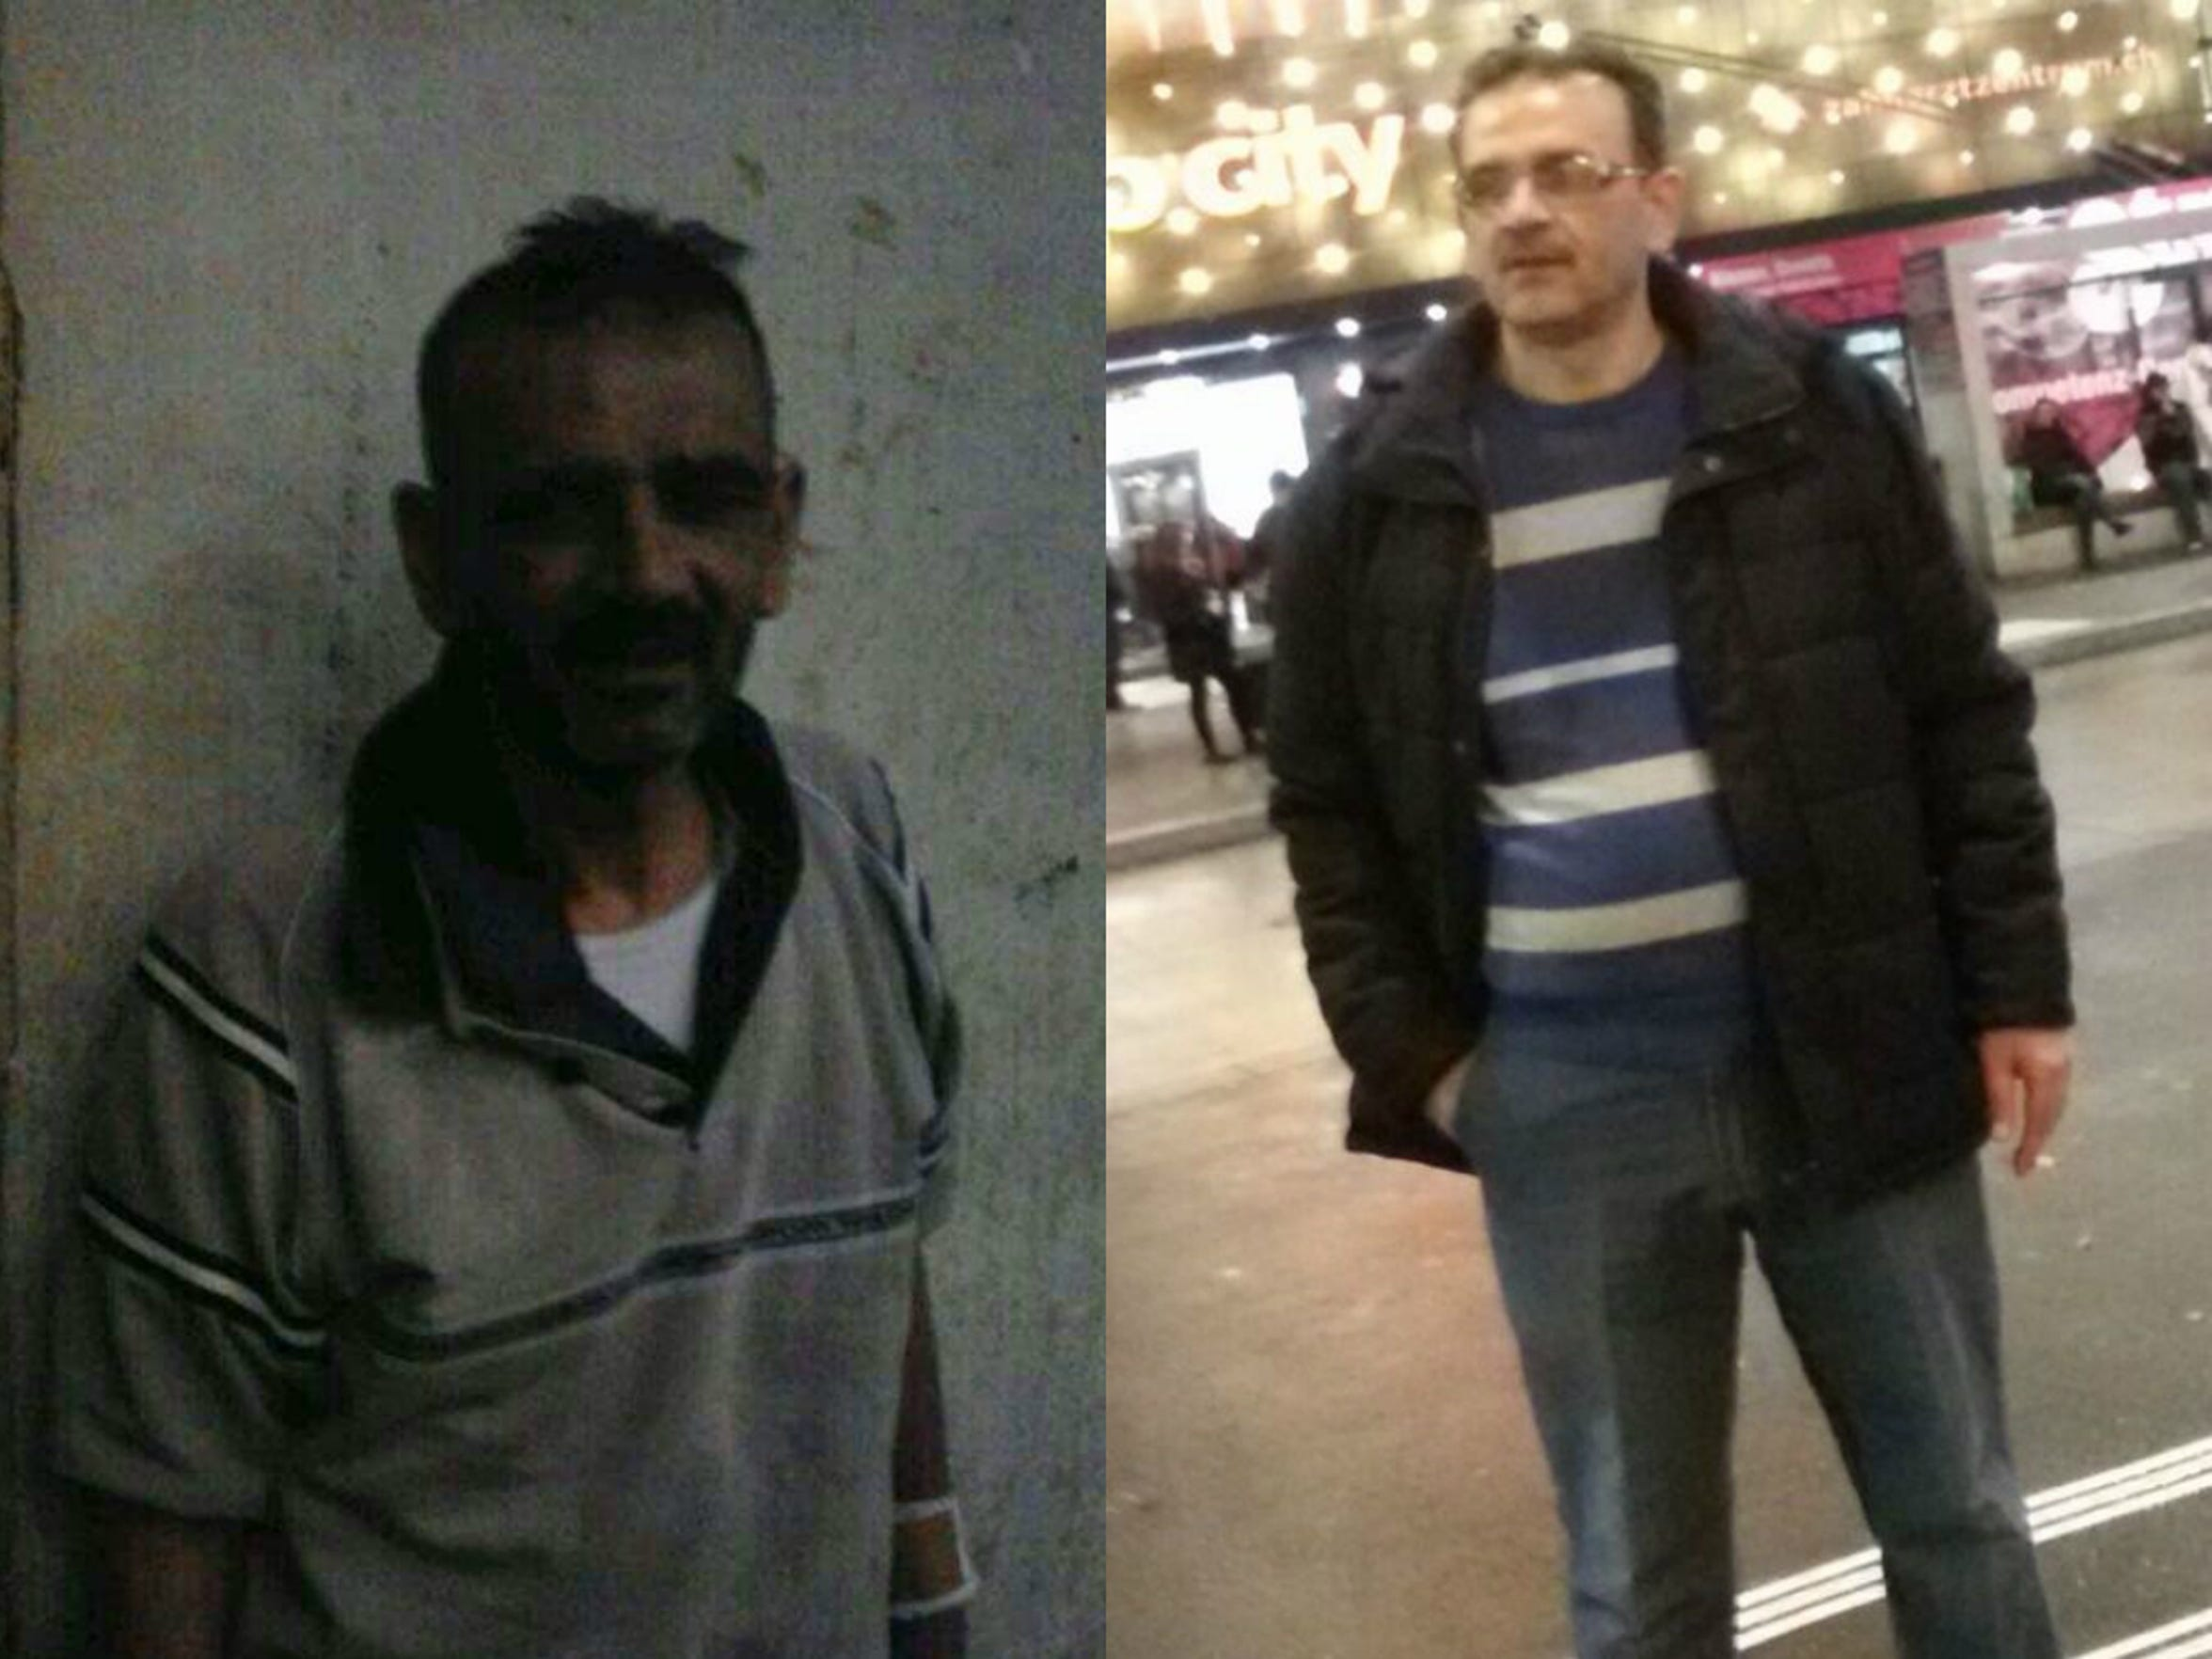 Marwan Batman's brother. The photo on the left was